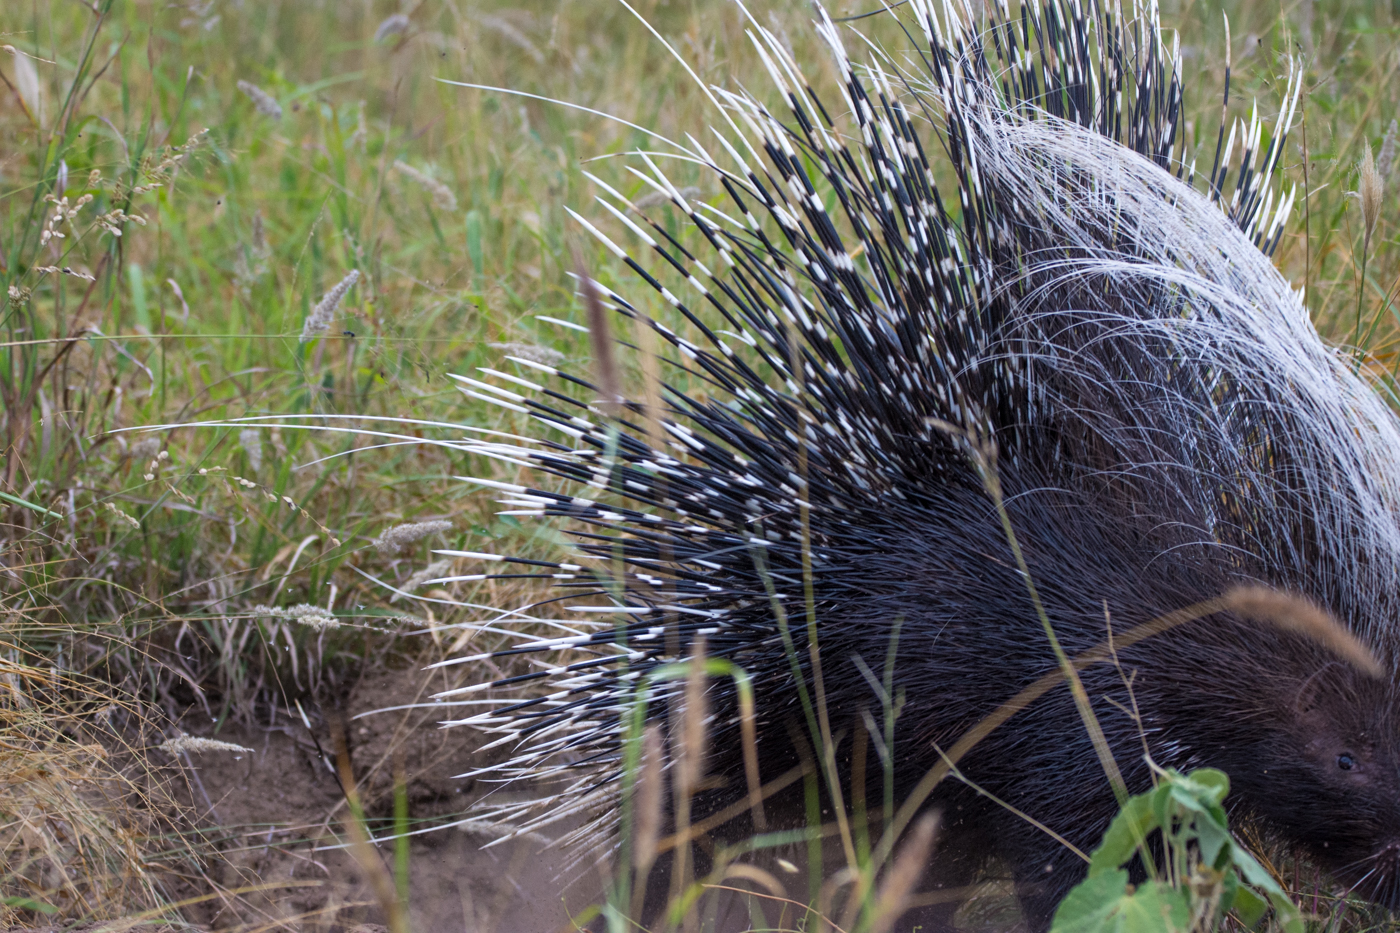 The first glimpse of the porcupine as it darted out of the hole in a hurry to seek shelter in a thicket nearby